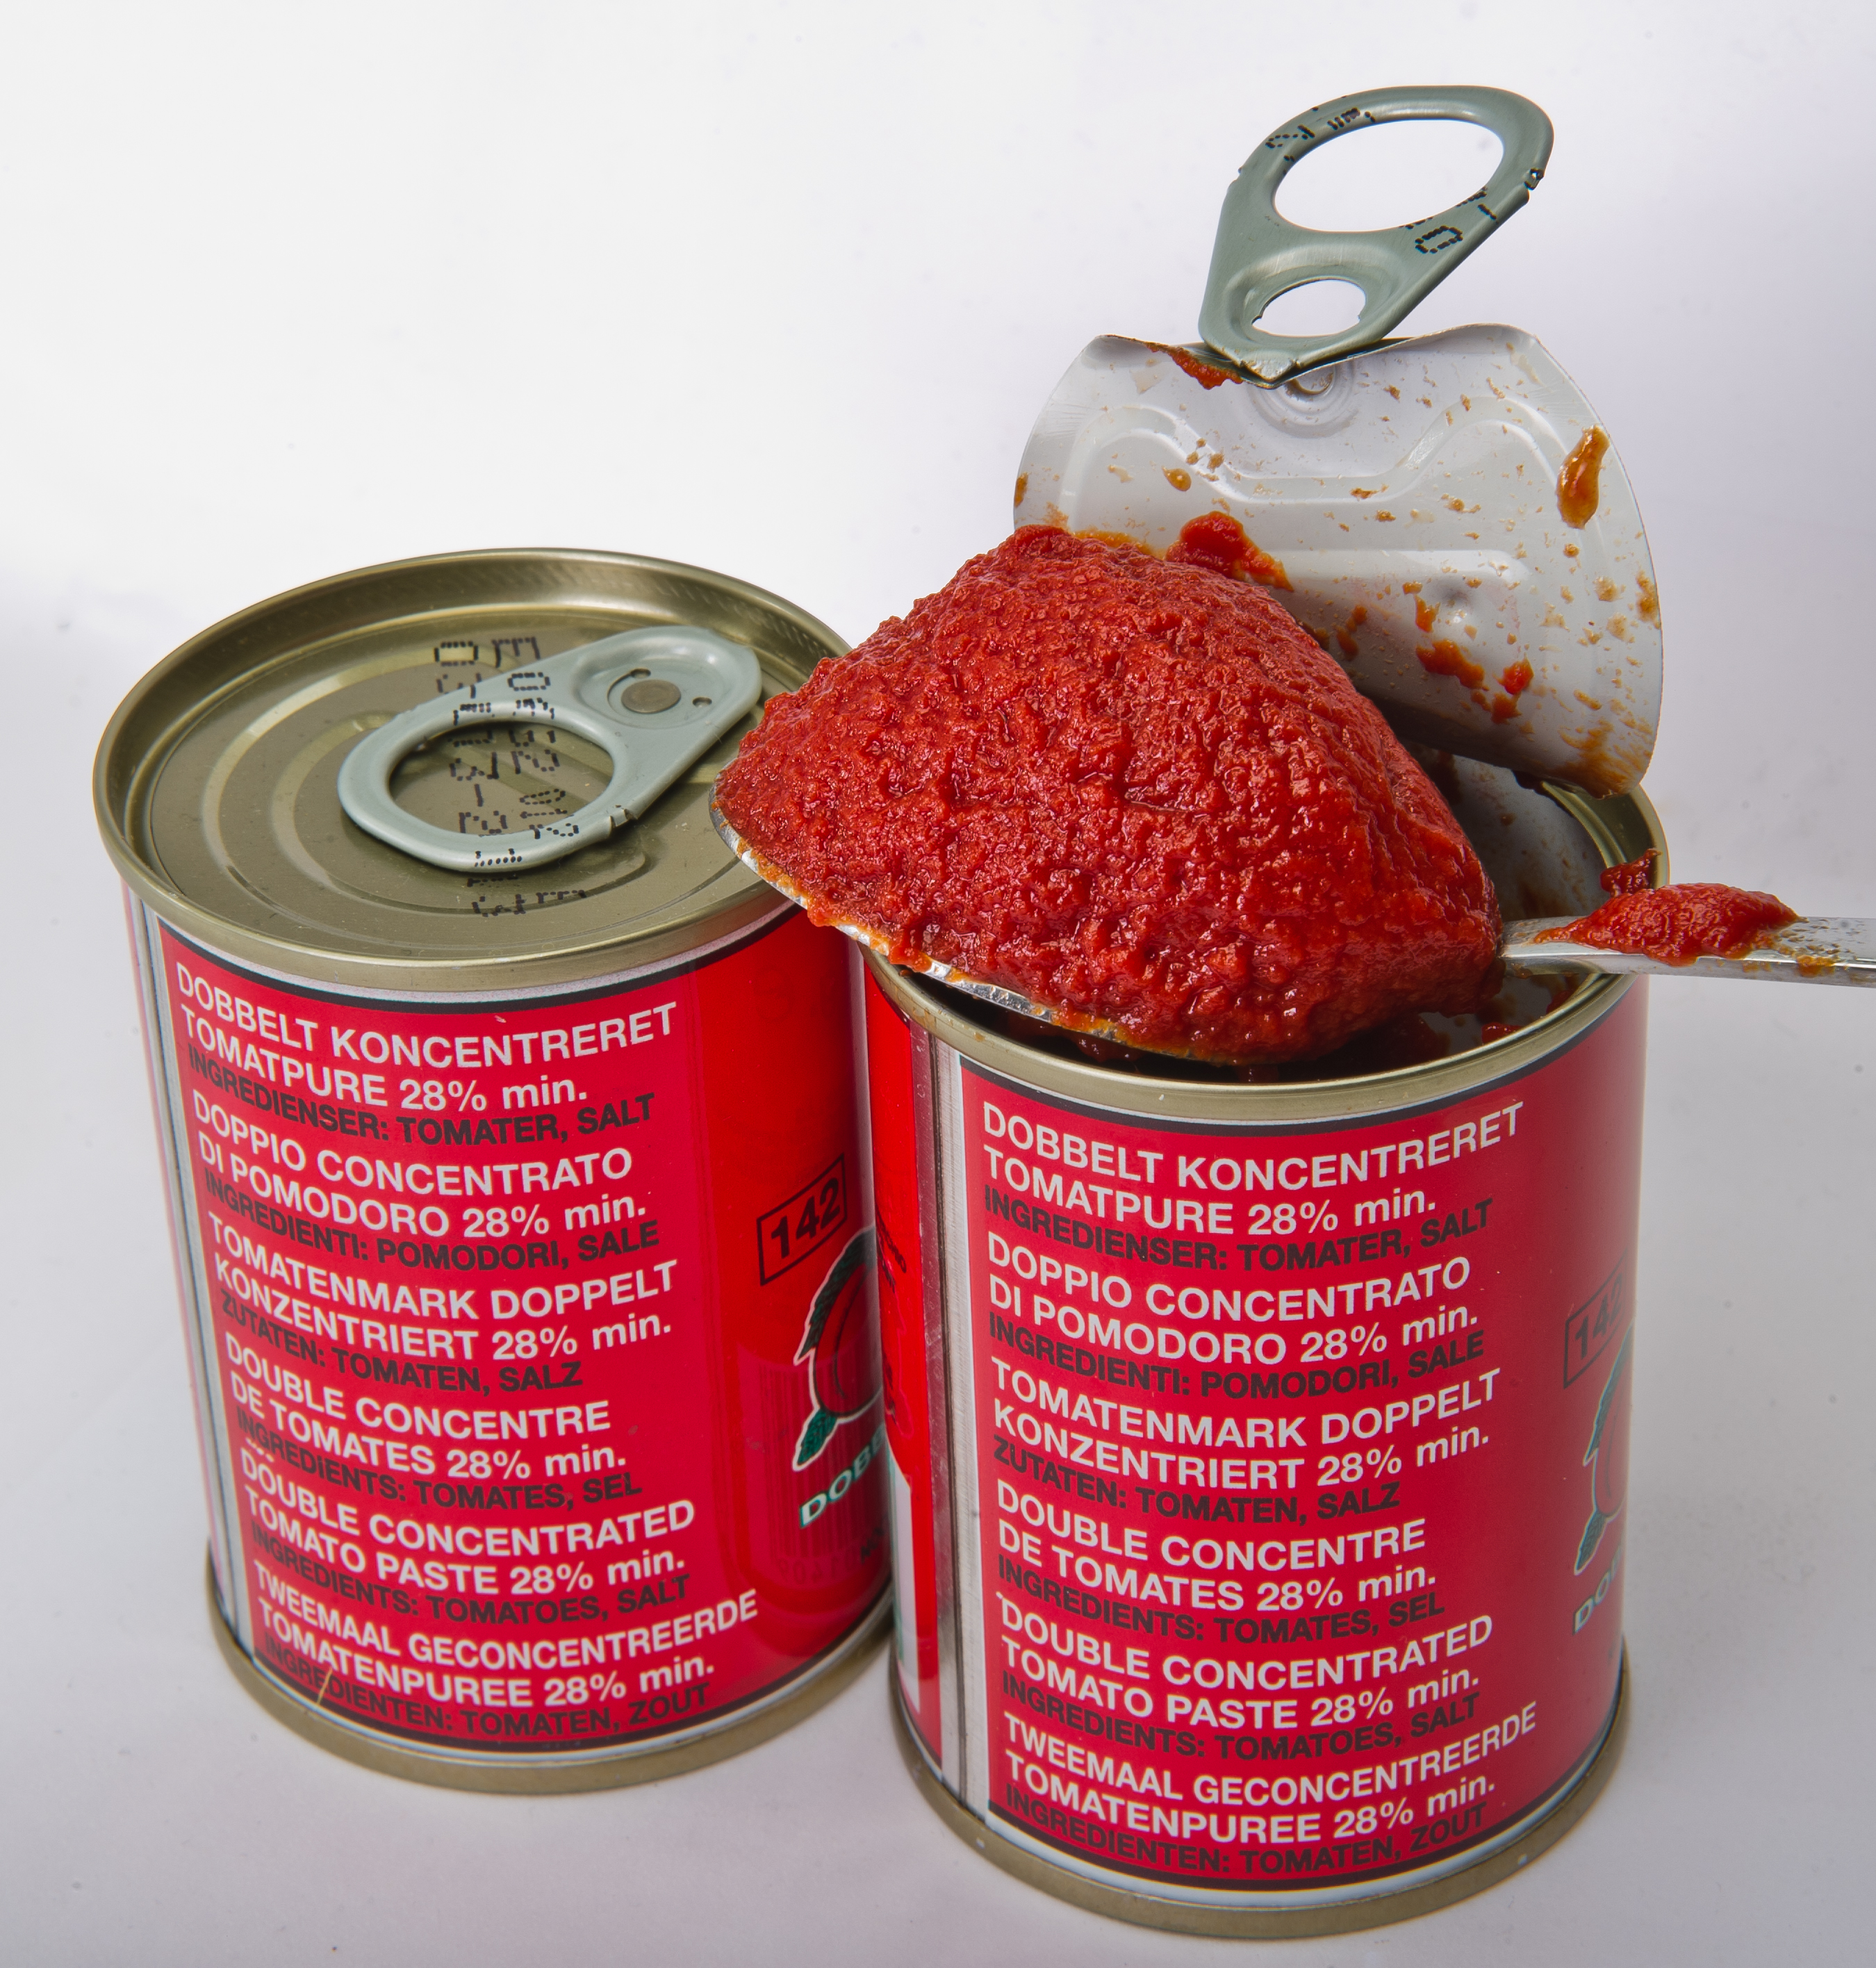 Tomato purée in cans - multilingual